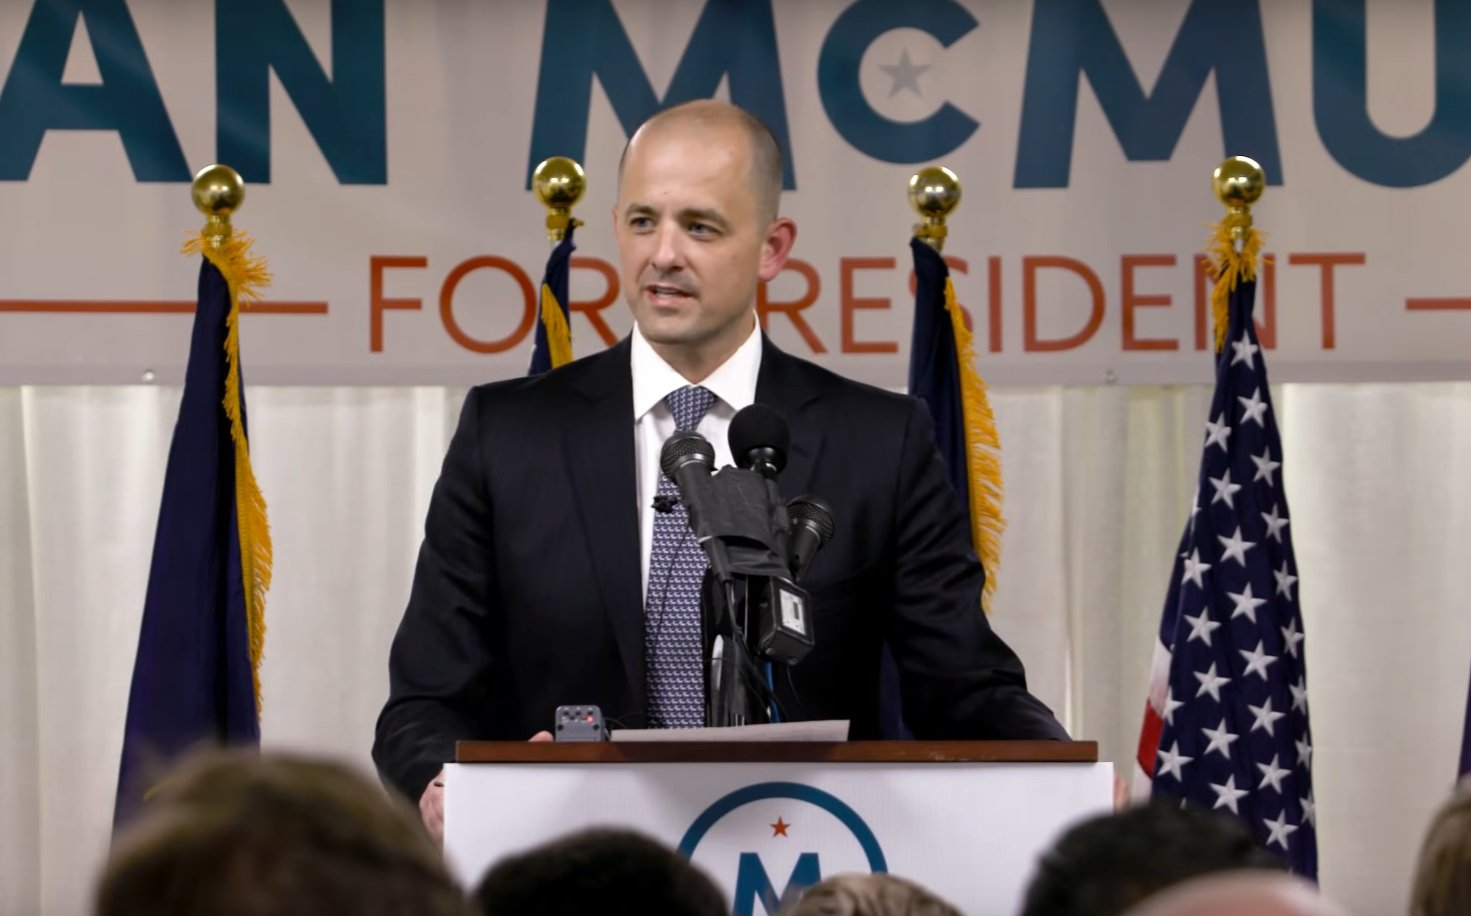 Evan McMullin anounding his run for president as an independent candidate, Salt Lake City, Utah, Aug. 8, 2016 | Photo courtesy of YouTube, St. George News